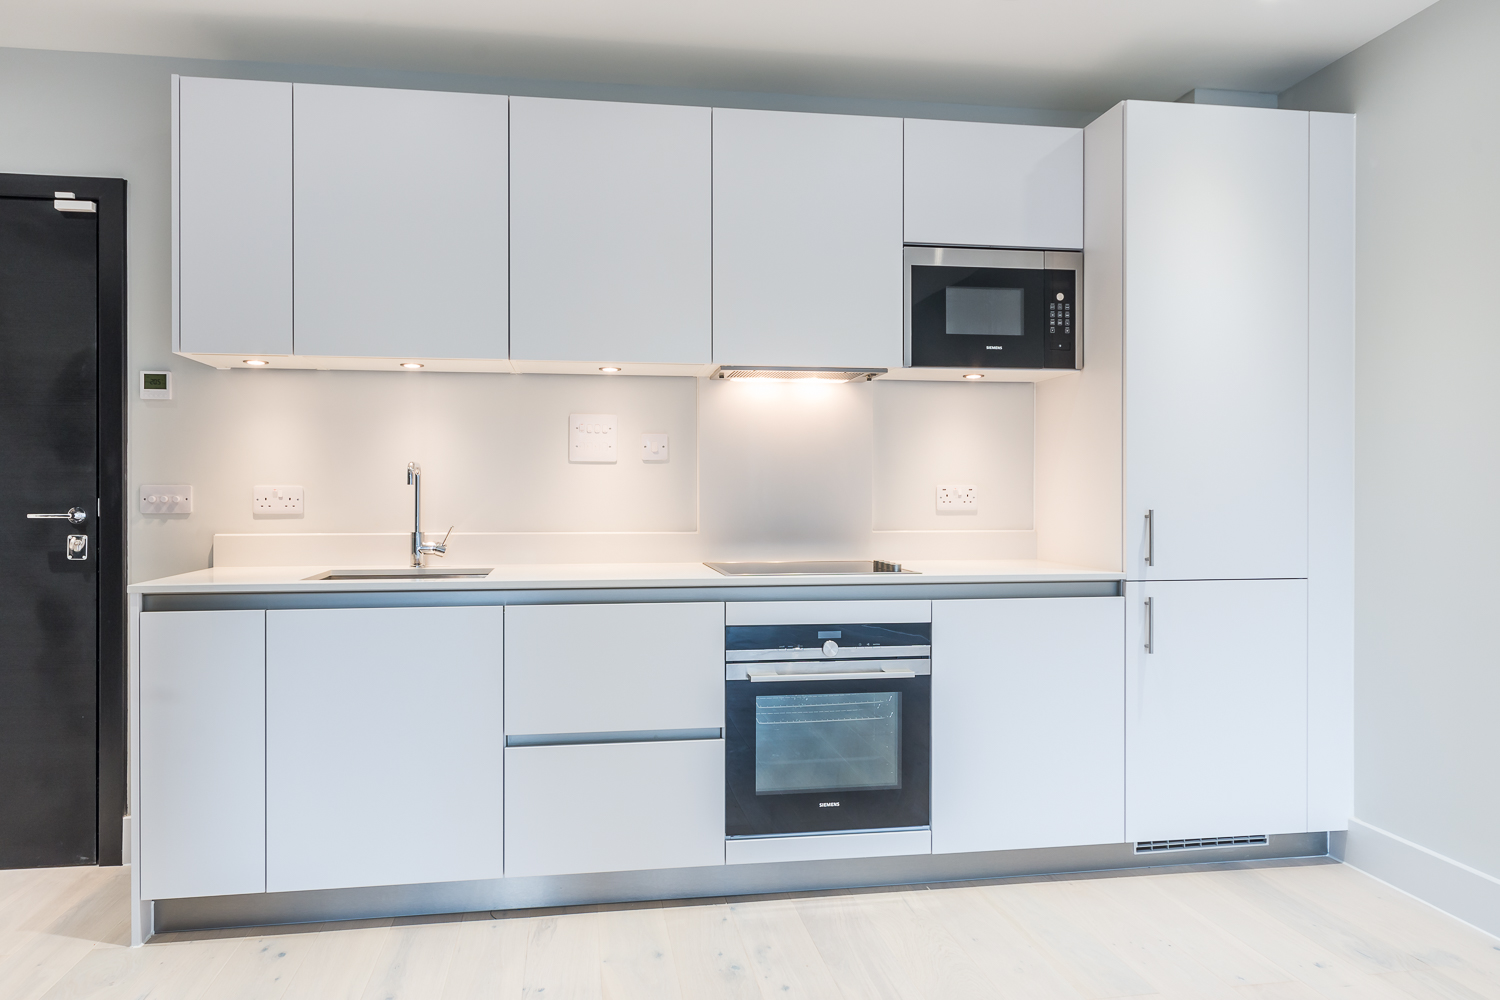 Kitchens for Developers